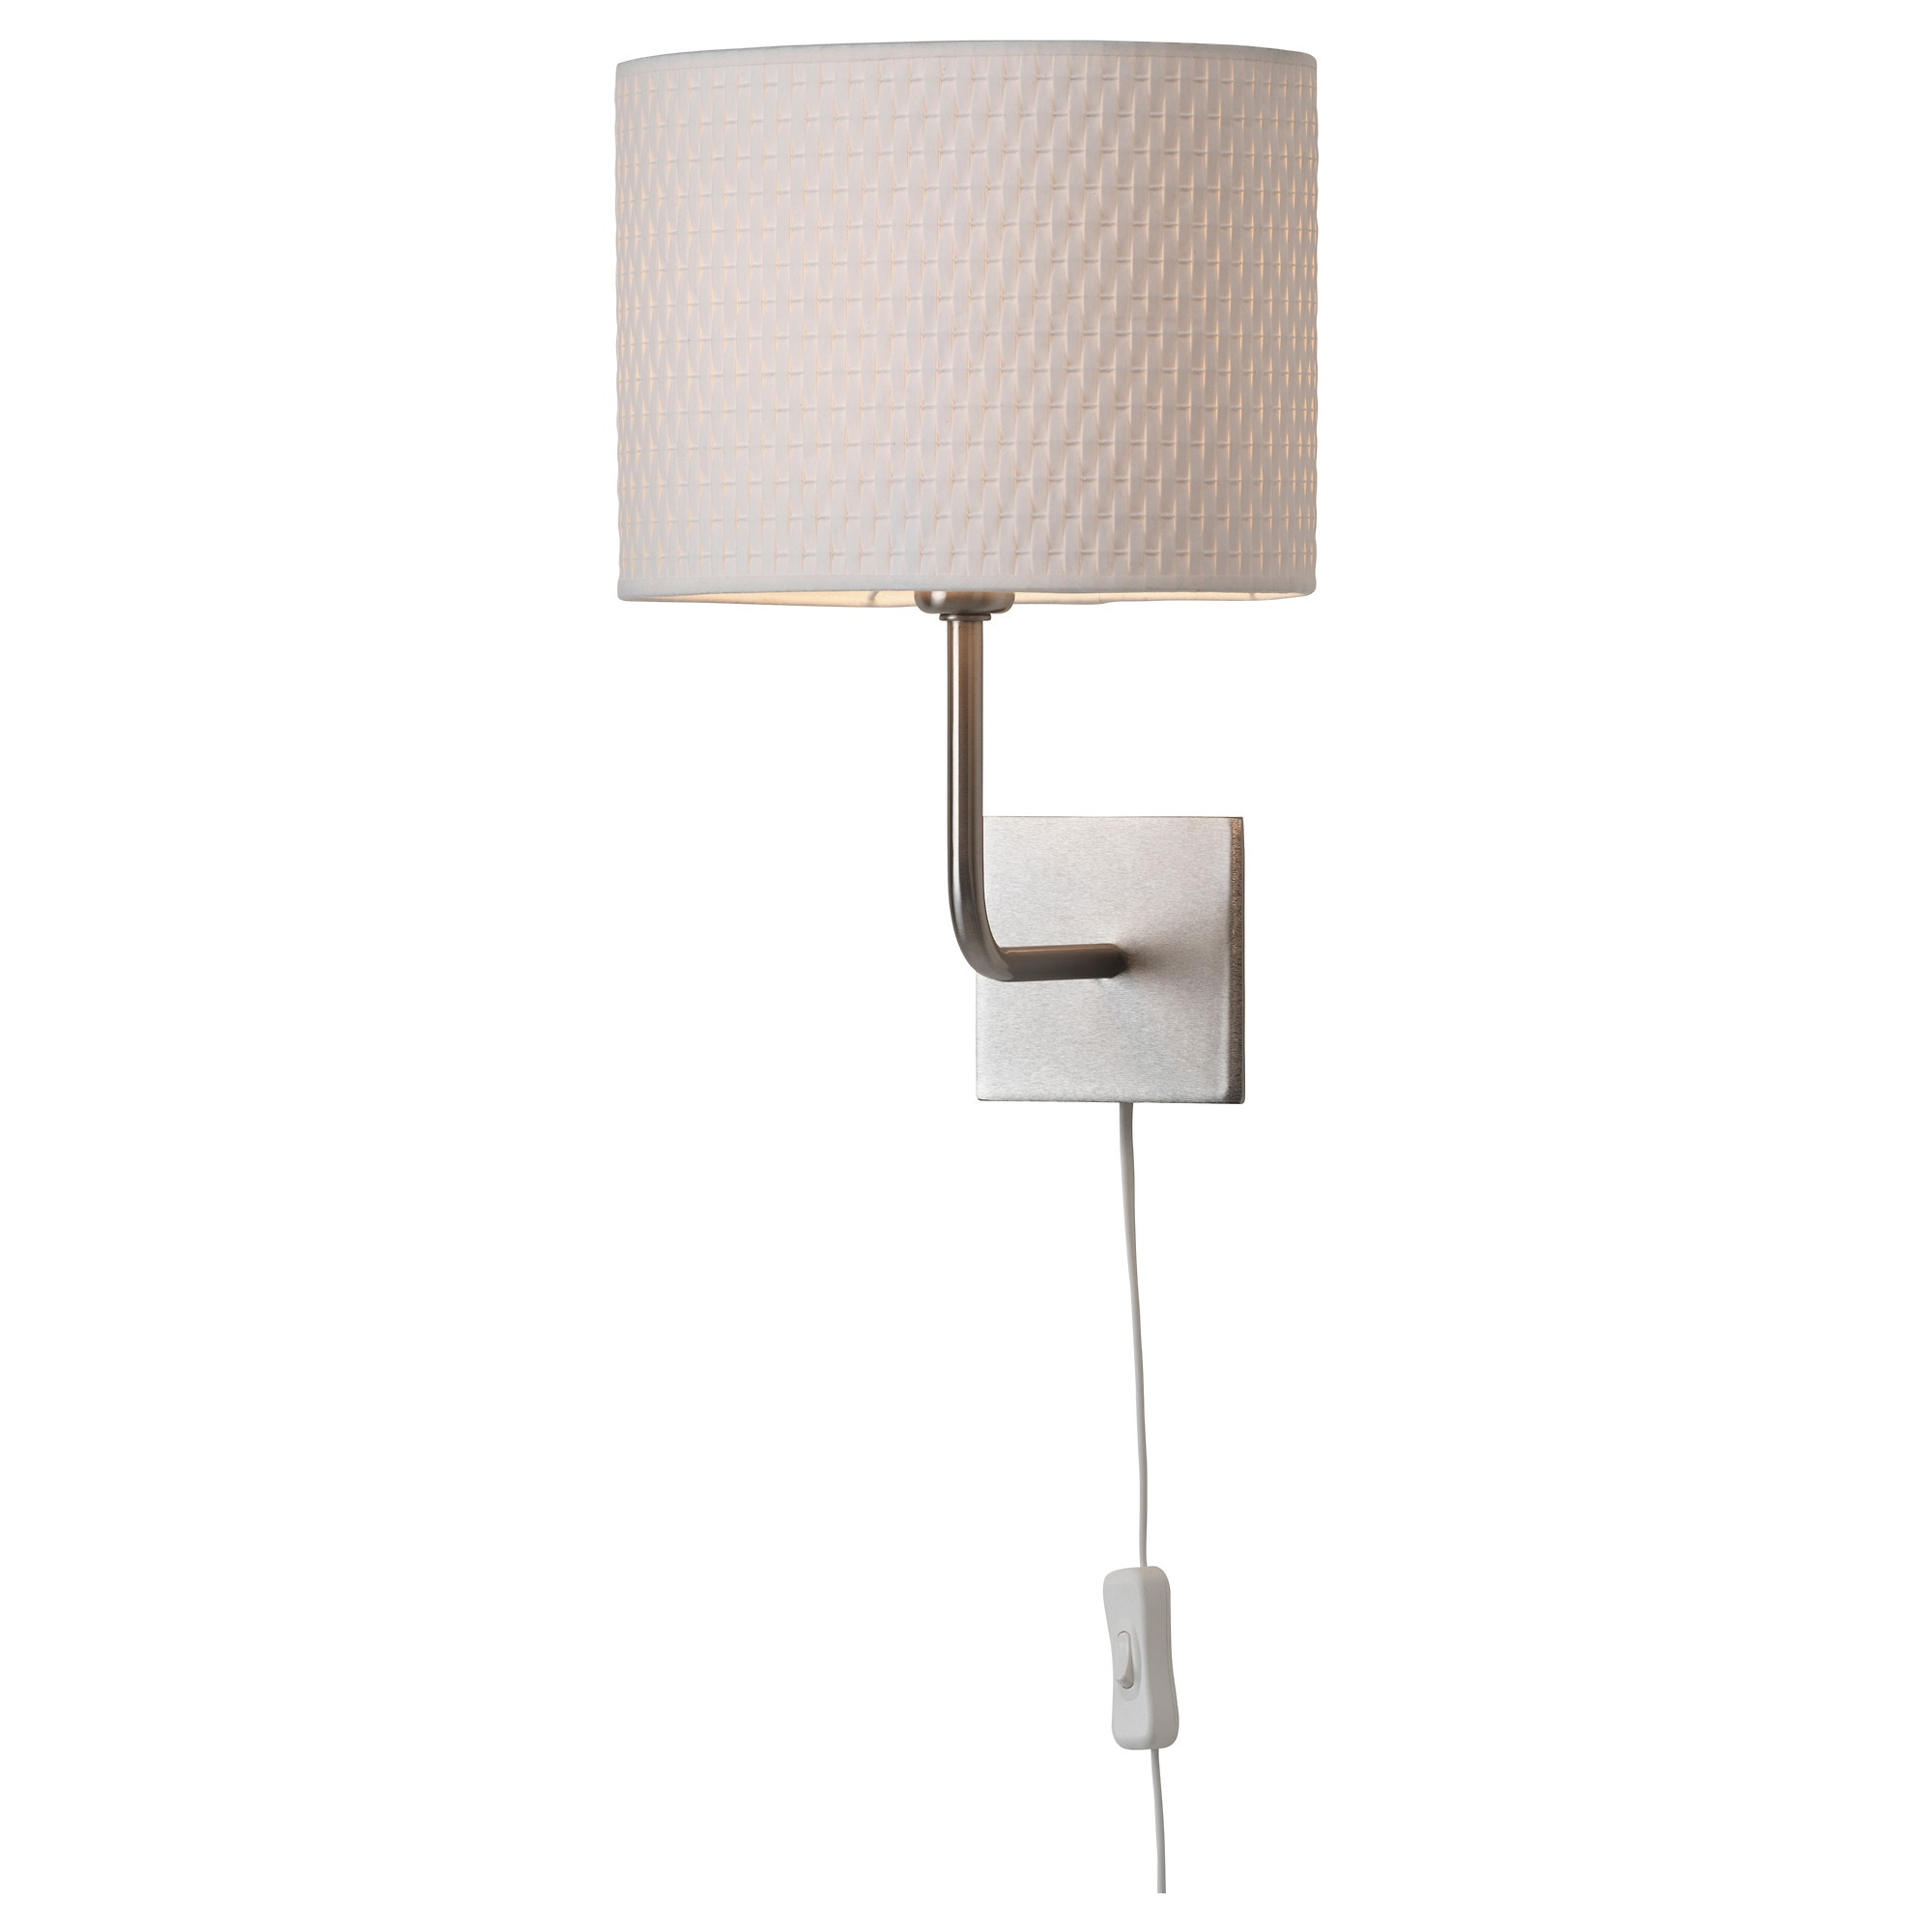 Bedside lamps wall mounted - Al Ng Wall Lamp With Led Bulb Nickel Plated White Width 10 Depth